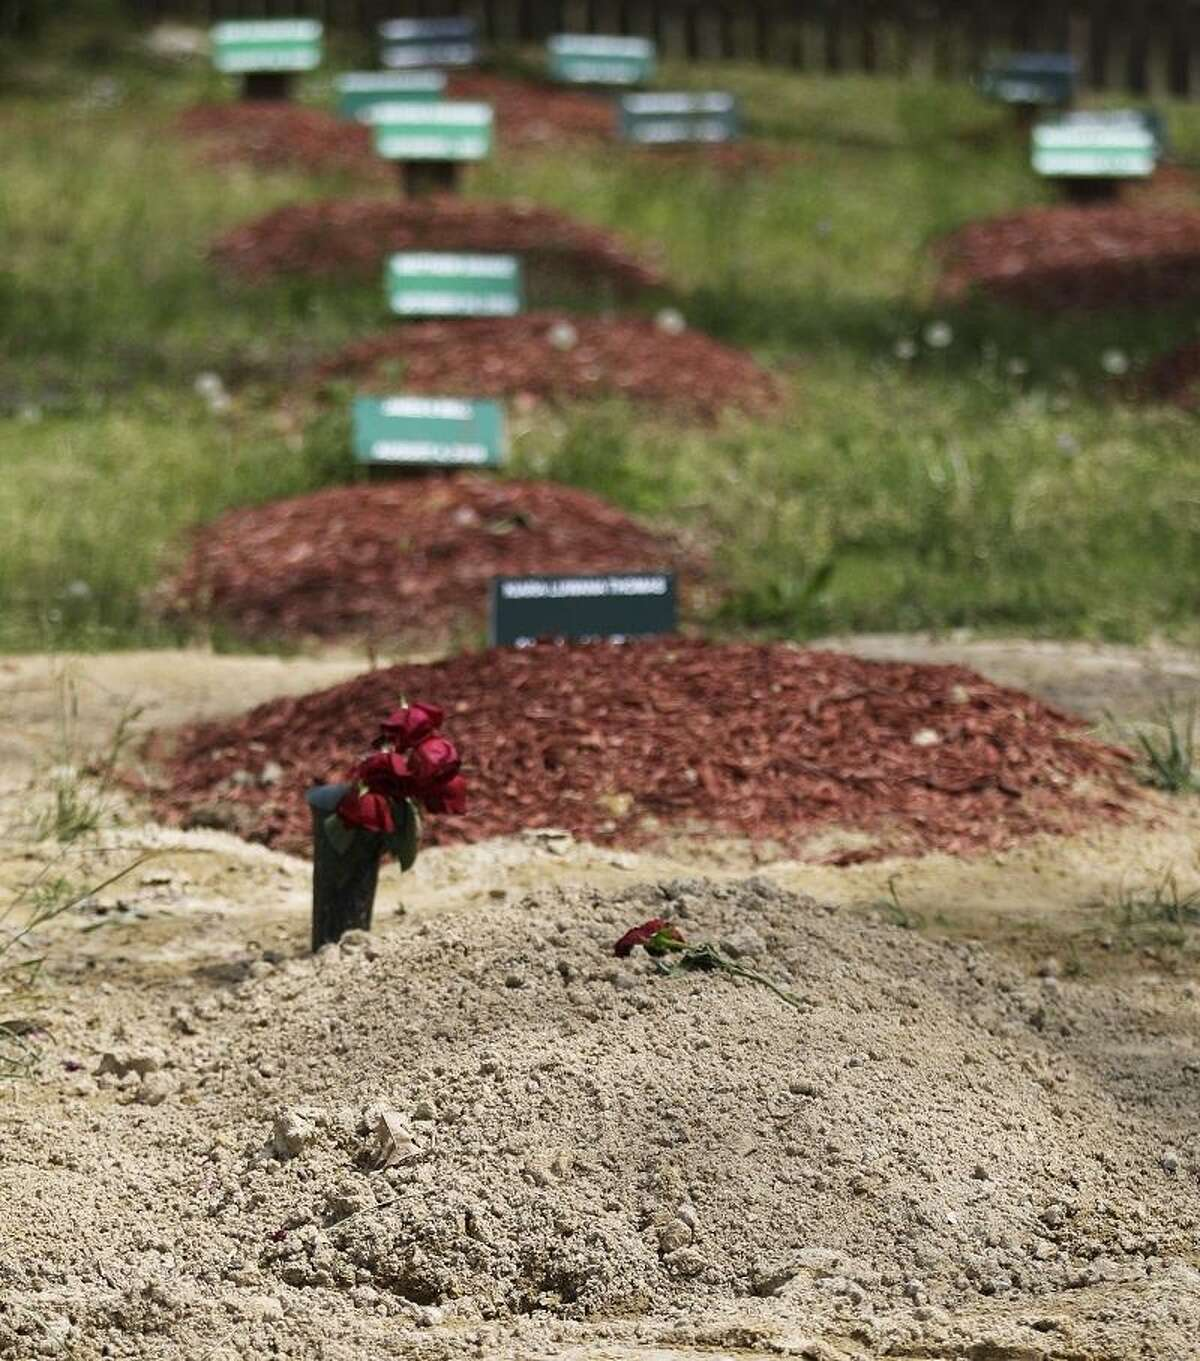 Flowers are placed on the alleged burial site of Boston Marathon bombing suspect Tamerlan Tsarnaev in Doswell, Va., Friday, May 10, 2013. Tsarnaev's uncle Ruslan Tsarni said Tsarnaev was buried in the cemetery in Doswell, near Richmond, Va.(AP Photo/Luis M. Alvarez)